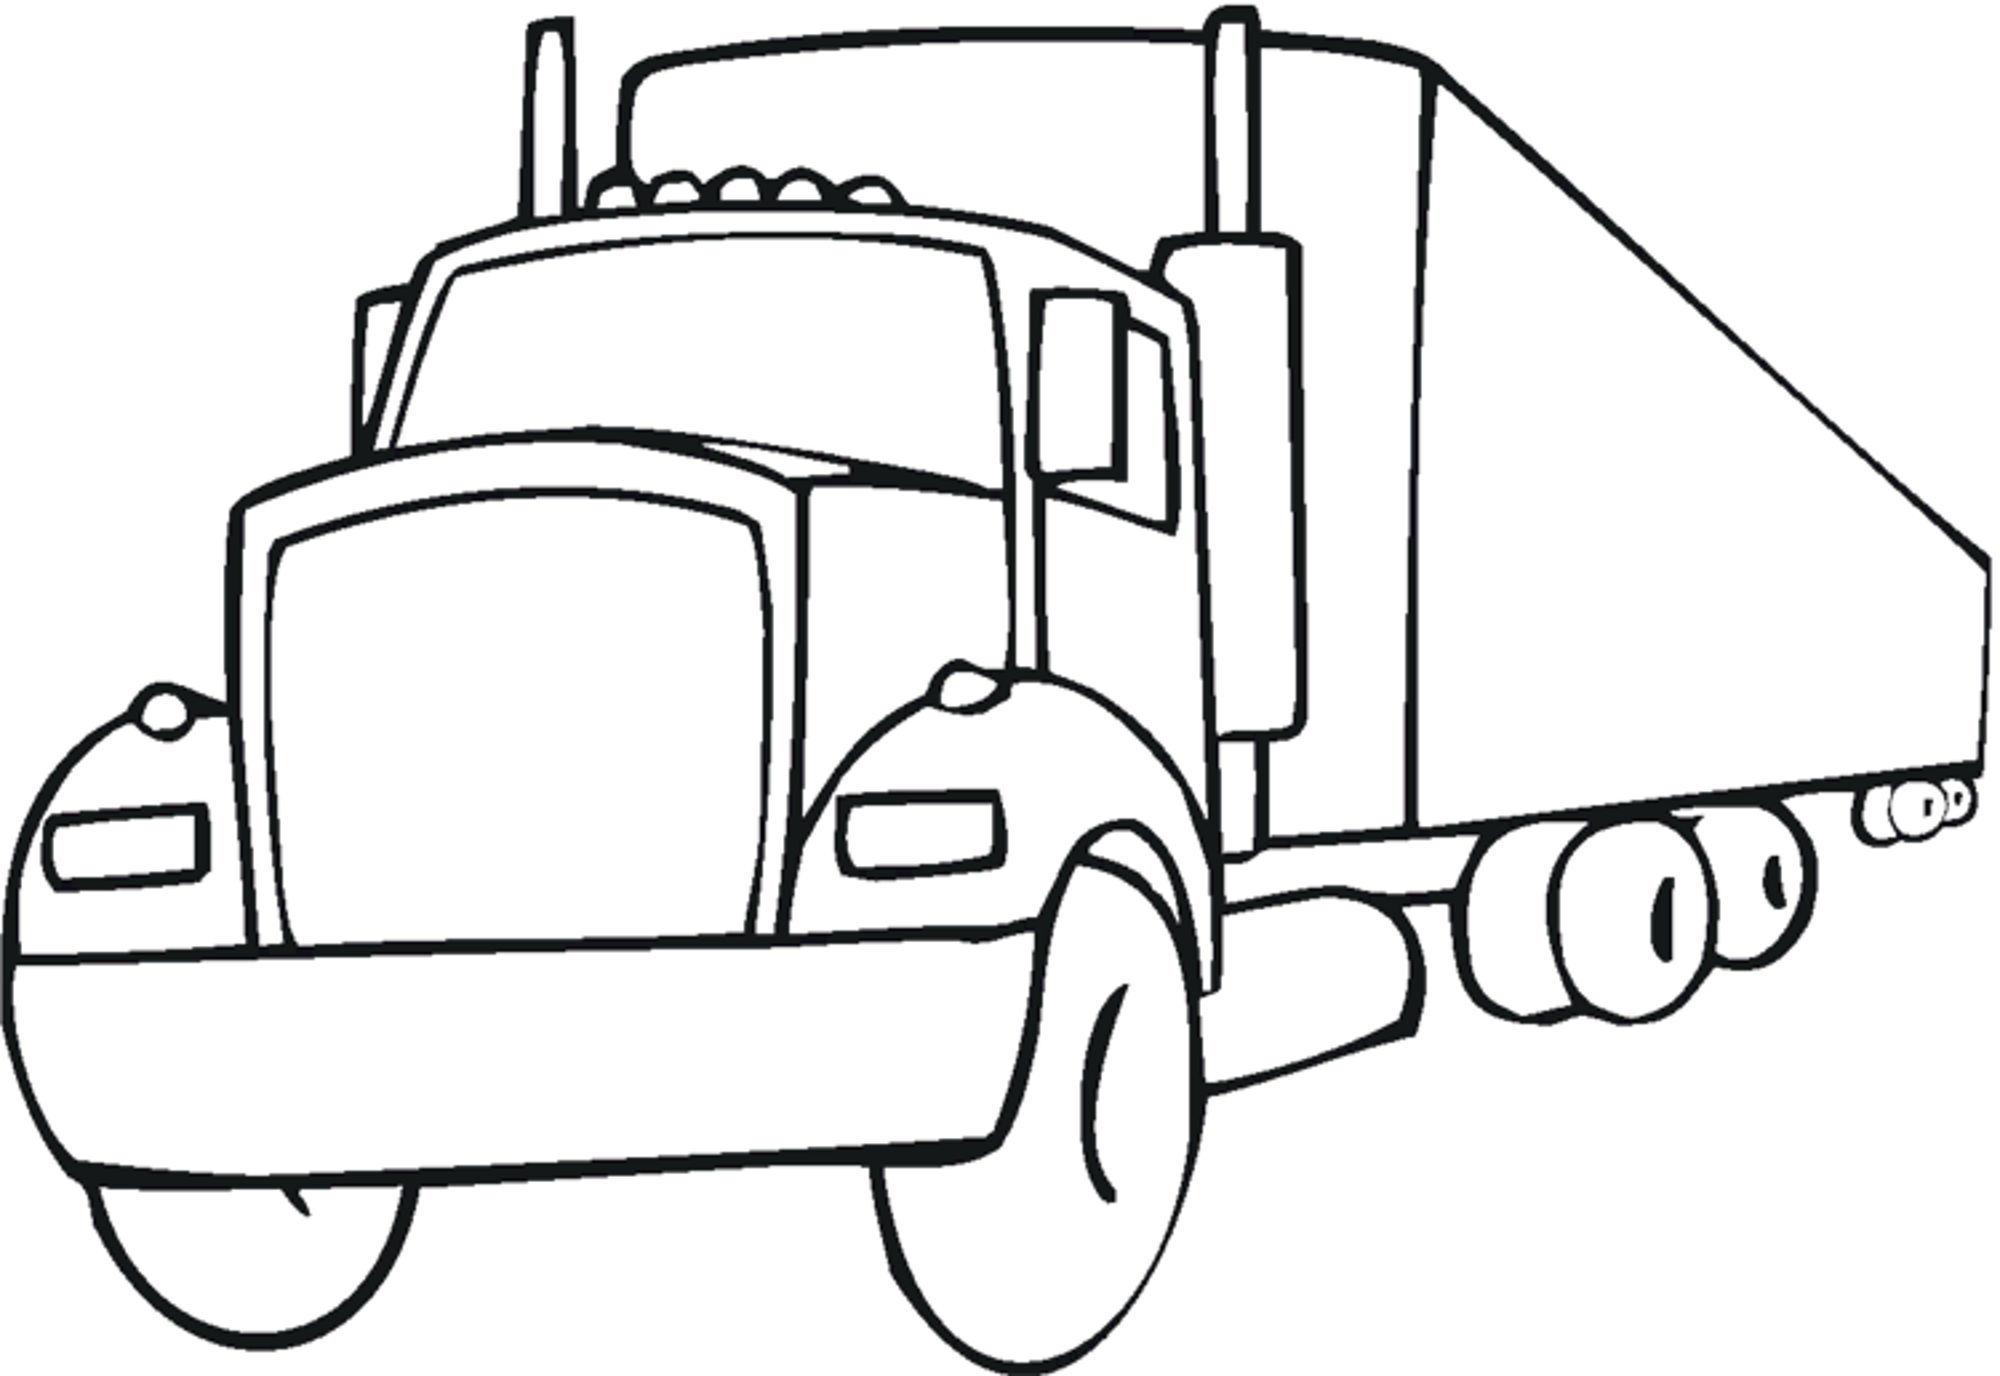 Free Truck Drawing For Kids Download Free Clip Art Free